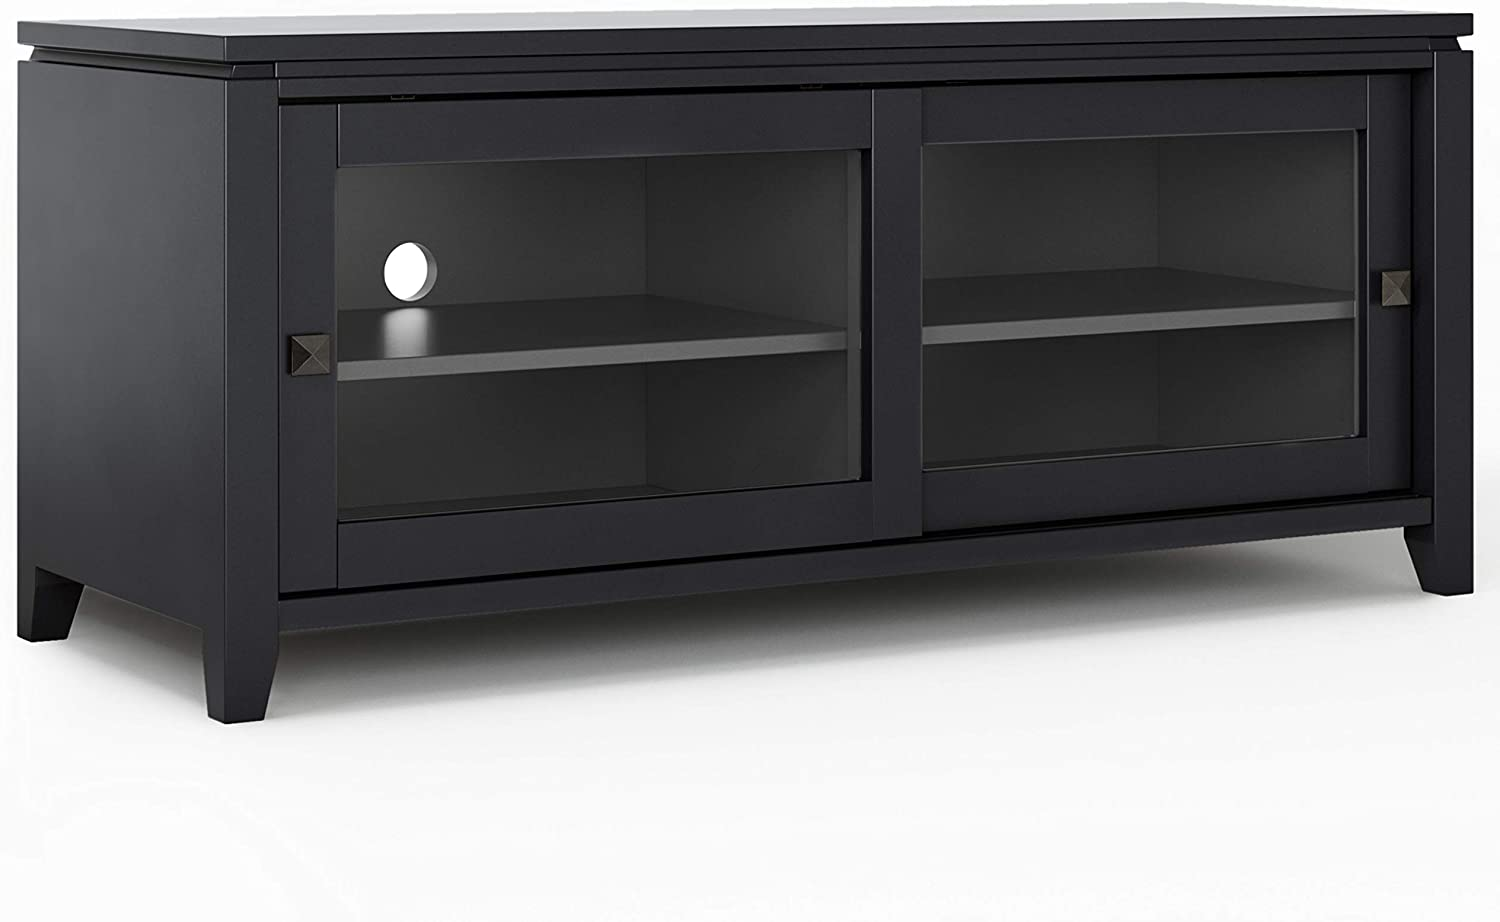 SIMPLIHOME Cosmopolitan SOLID WOOD Universal TV Media Stand, 48 inch Wide, Contemporary, Living Room Entertainment Center, Cabinet, Glass Doors, for Flat Screen TVs up to 55